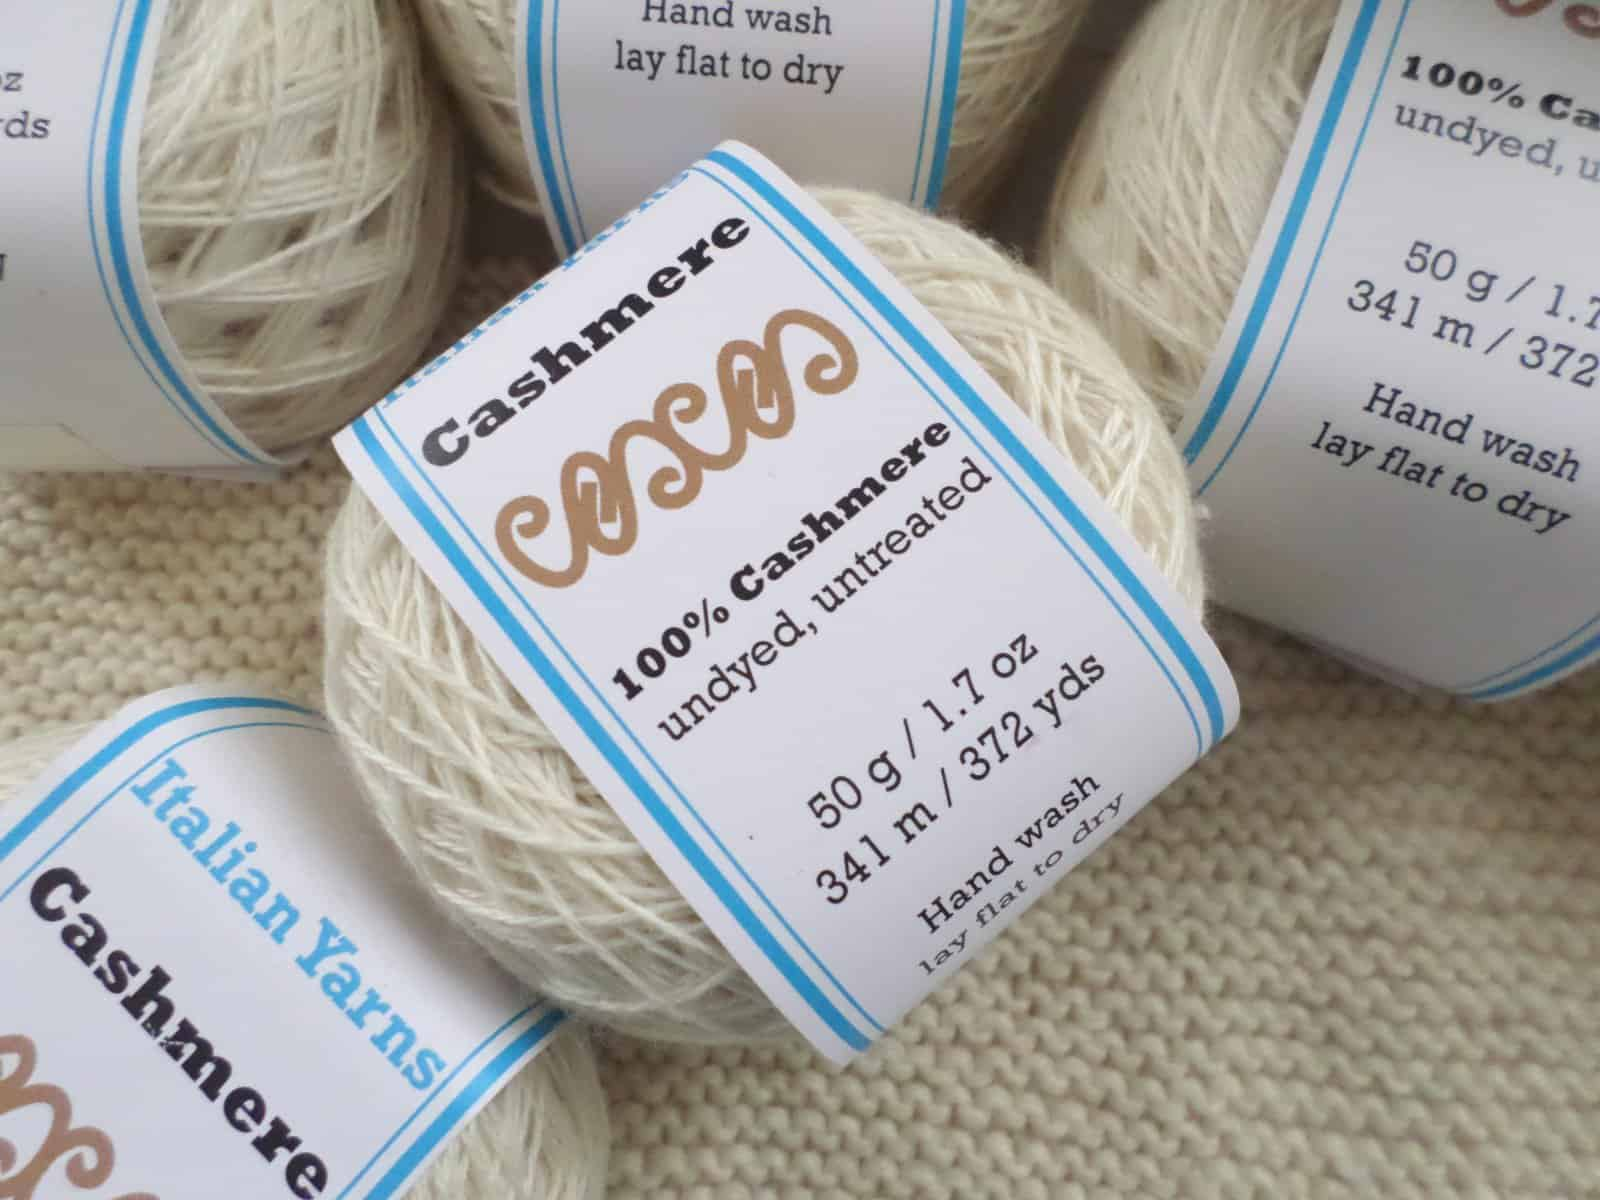 Undyed Untreated 100% Cashmere